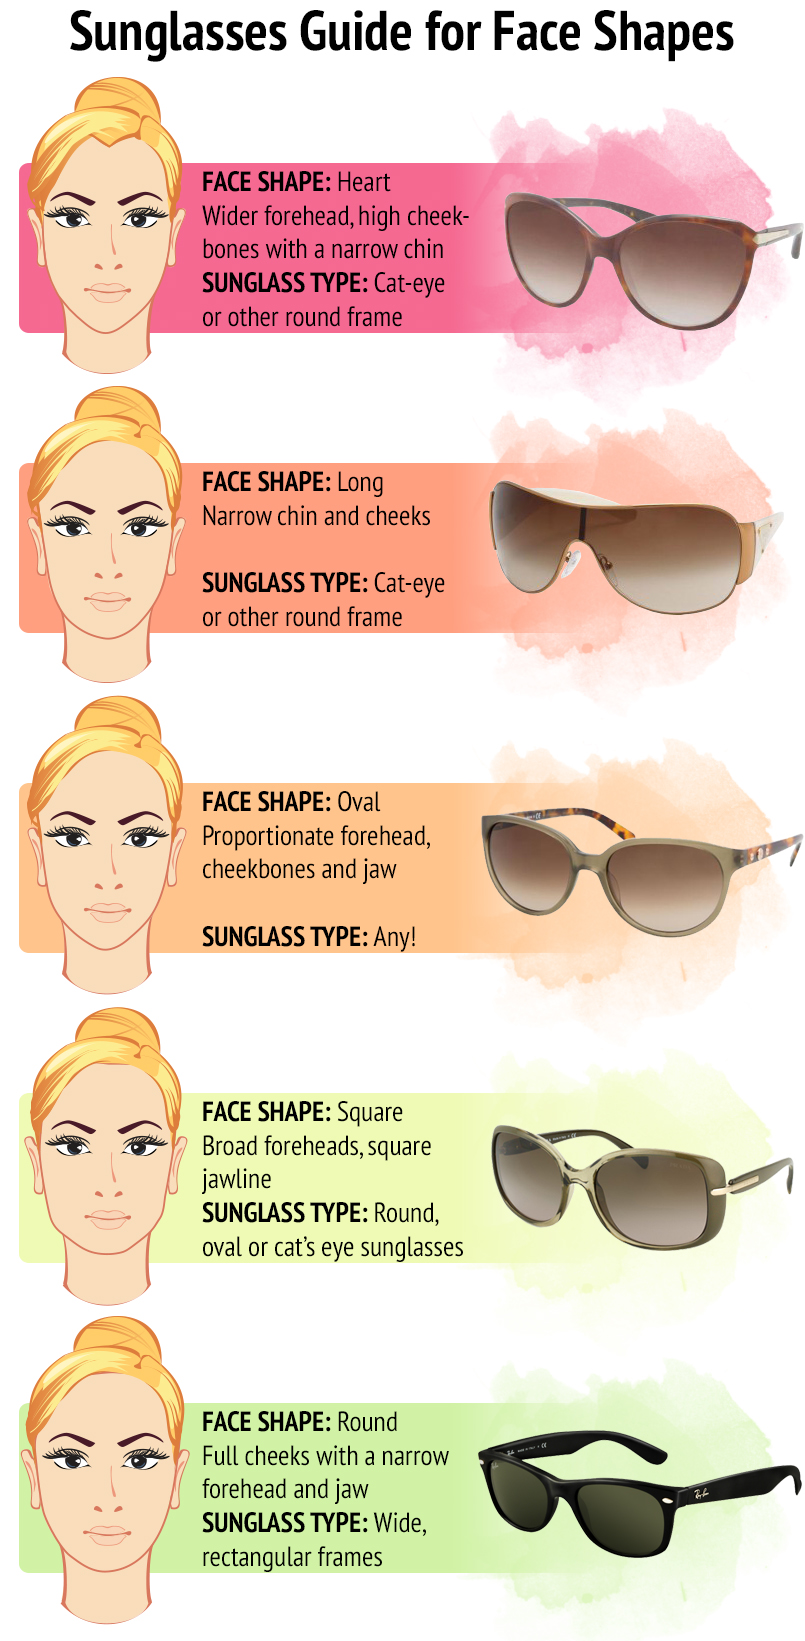 Sunglasses Guide for Face Shapes | Visual.ly